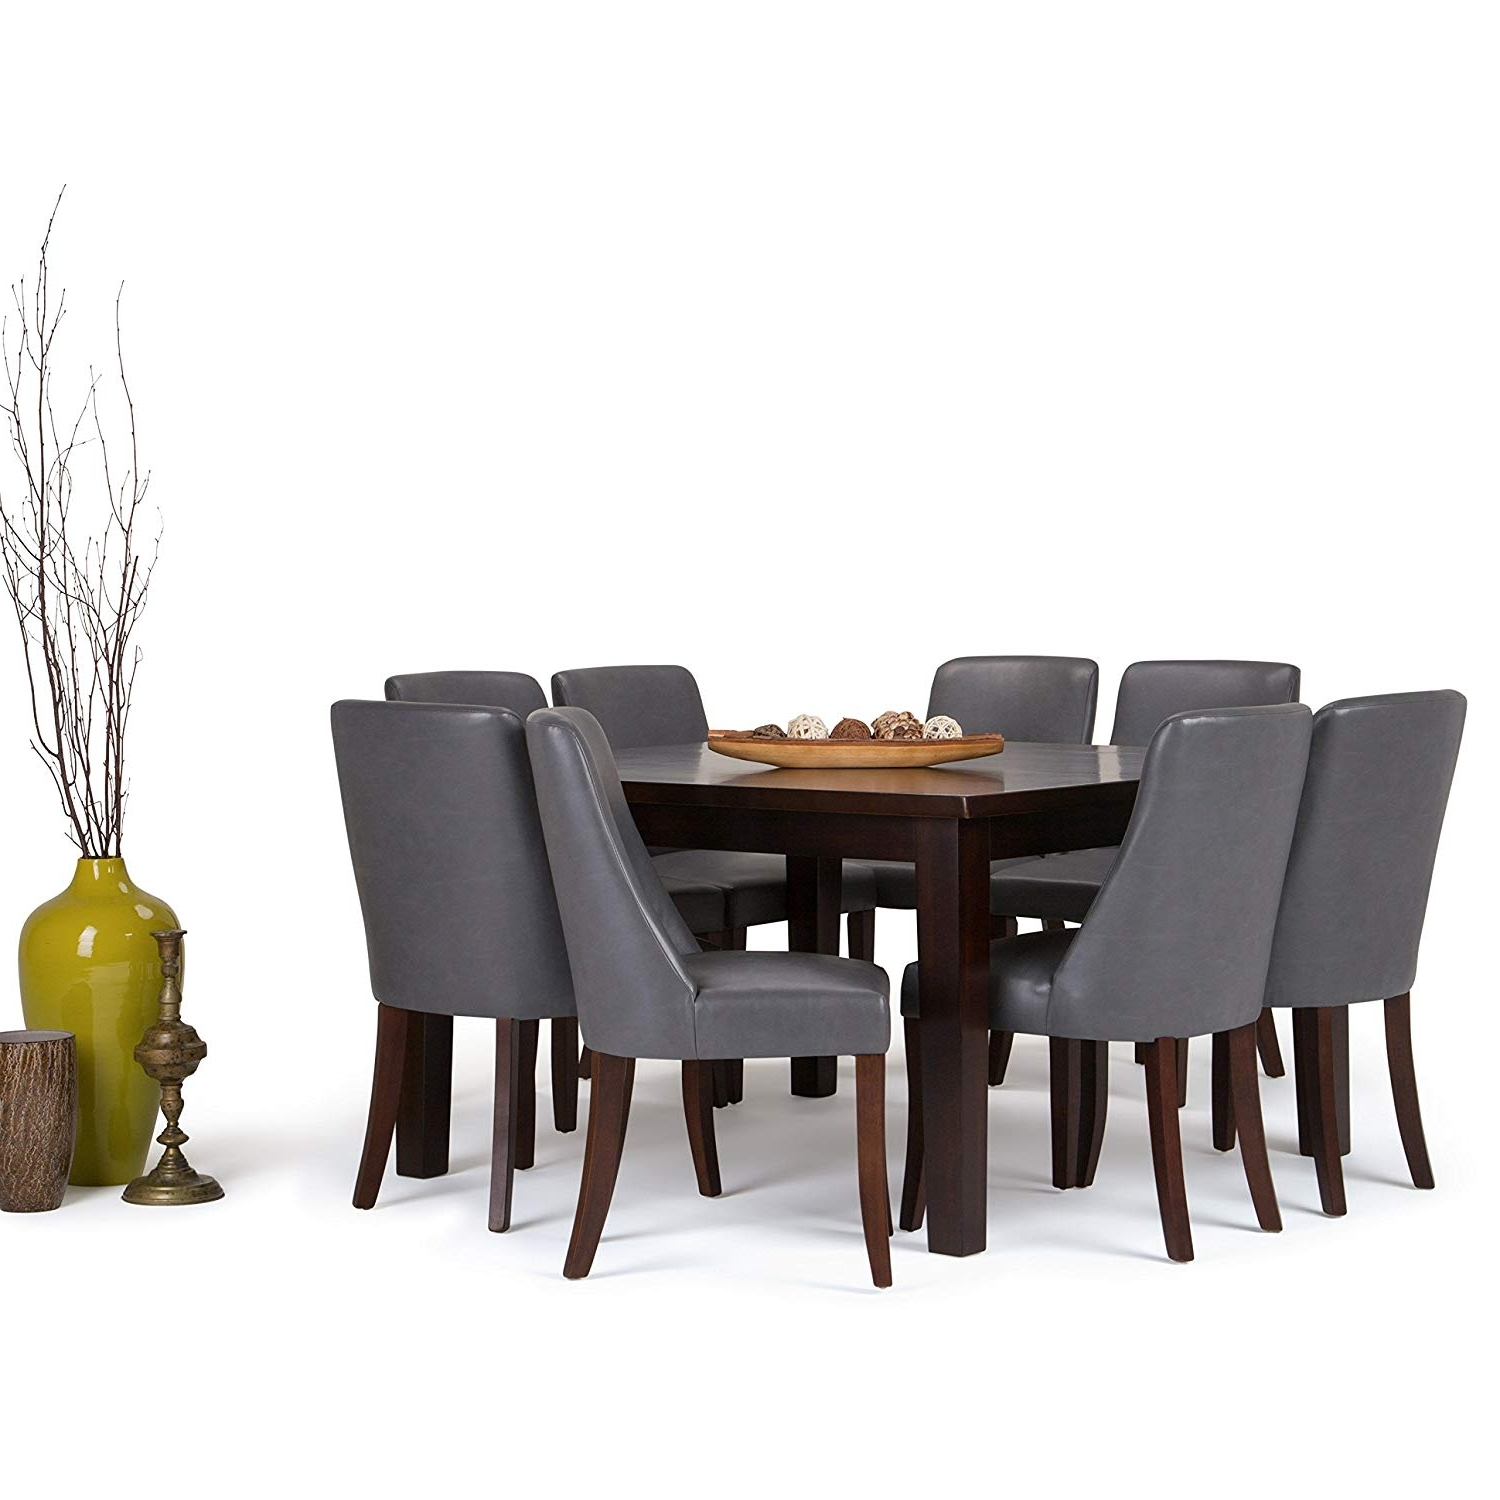 Amazon: Simpli Home Walden 9 Piece Dining Set, Stone Grey Intended For Trendy Walden 9 Piece Extension Dining Sets (View 2 of 25)